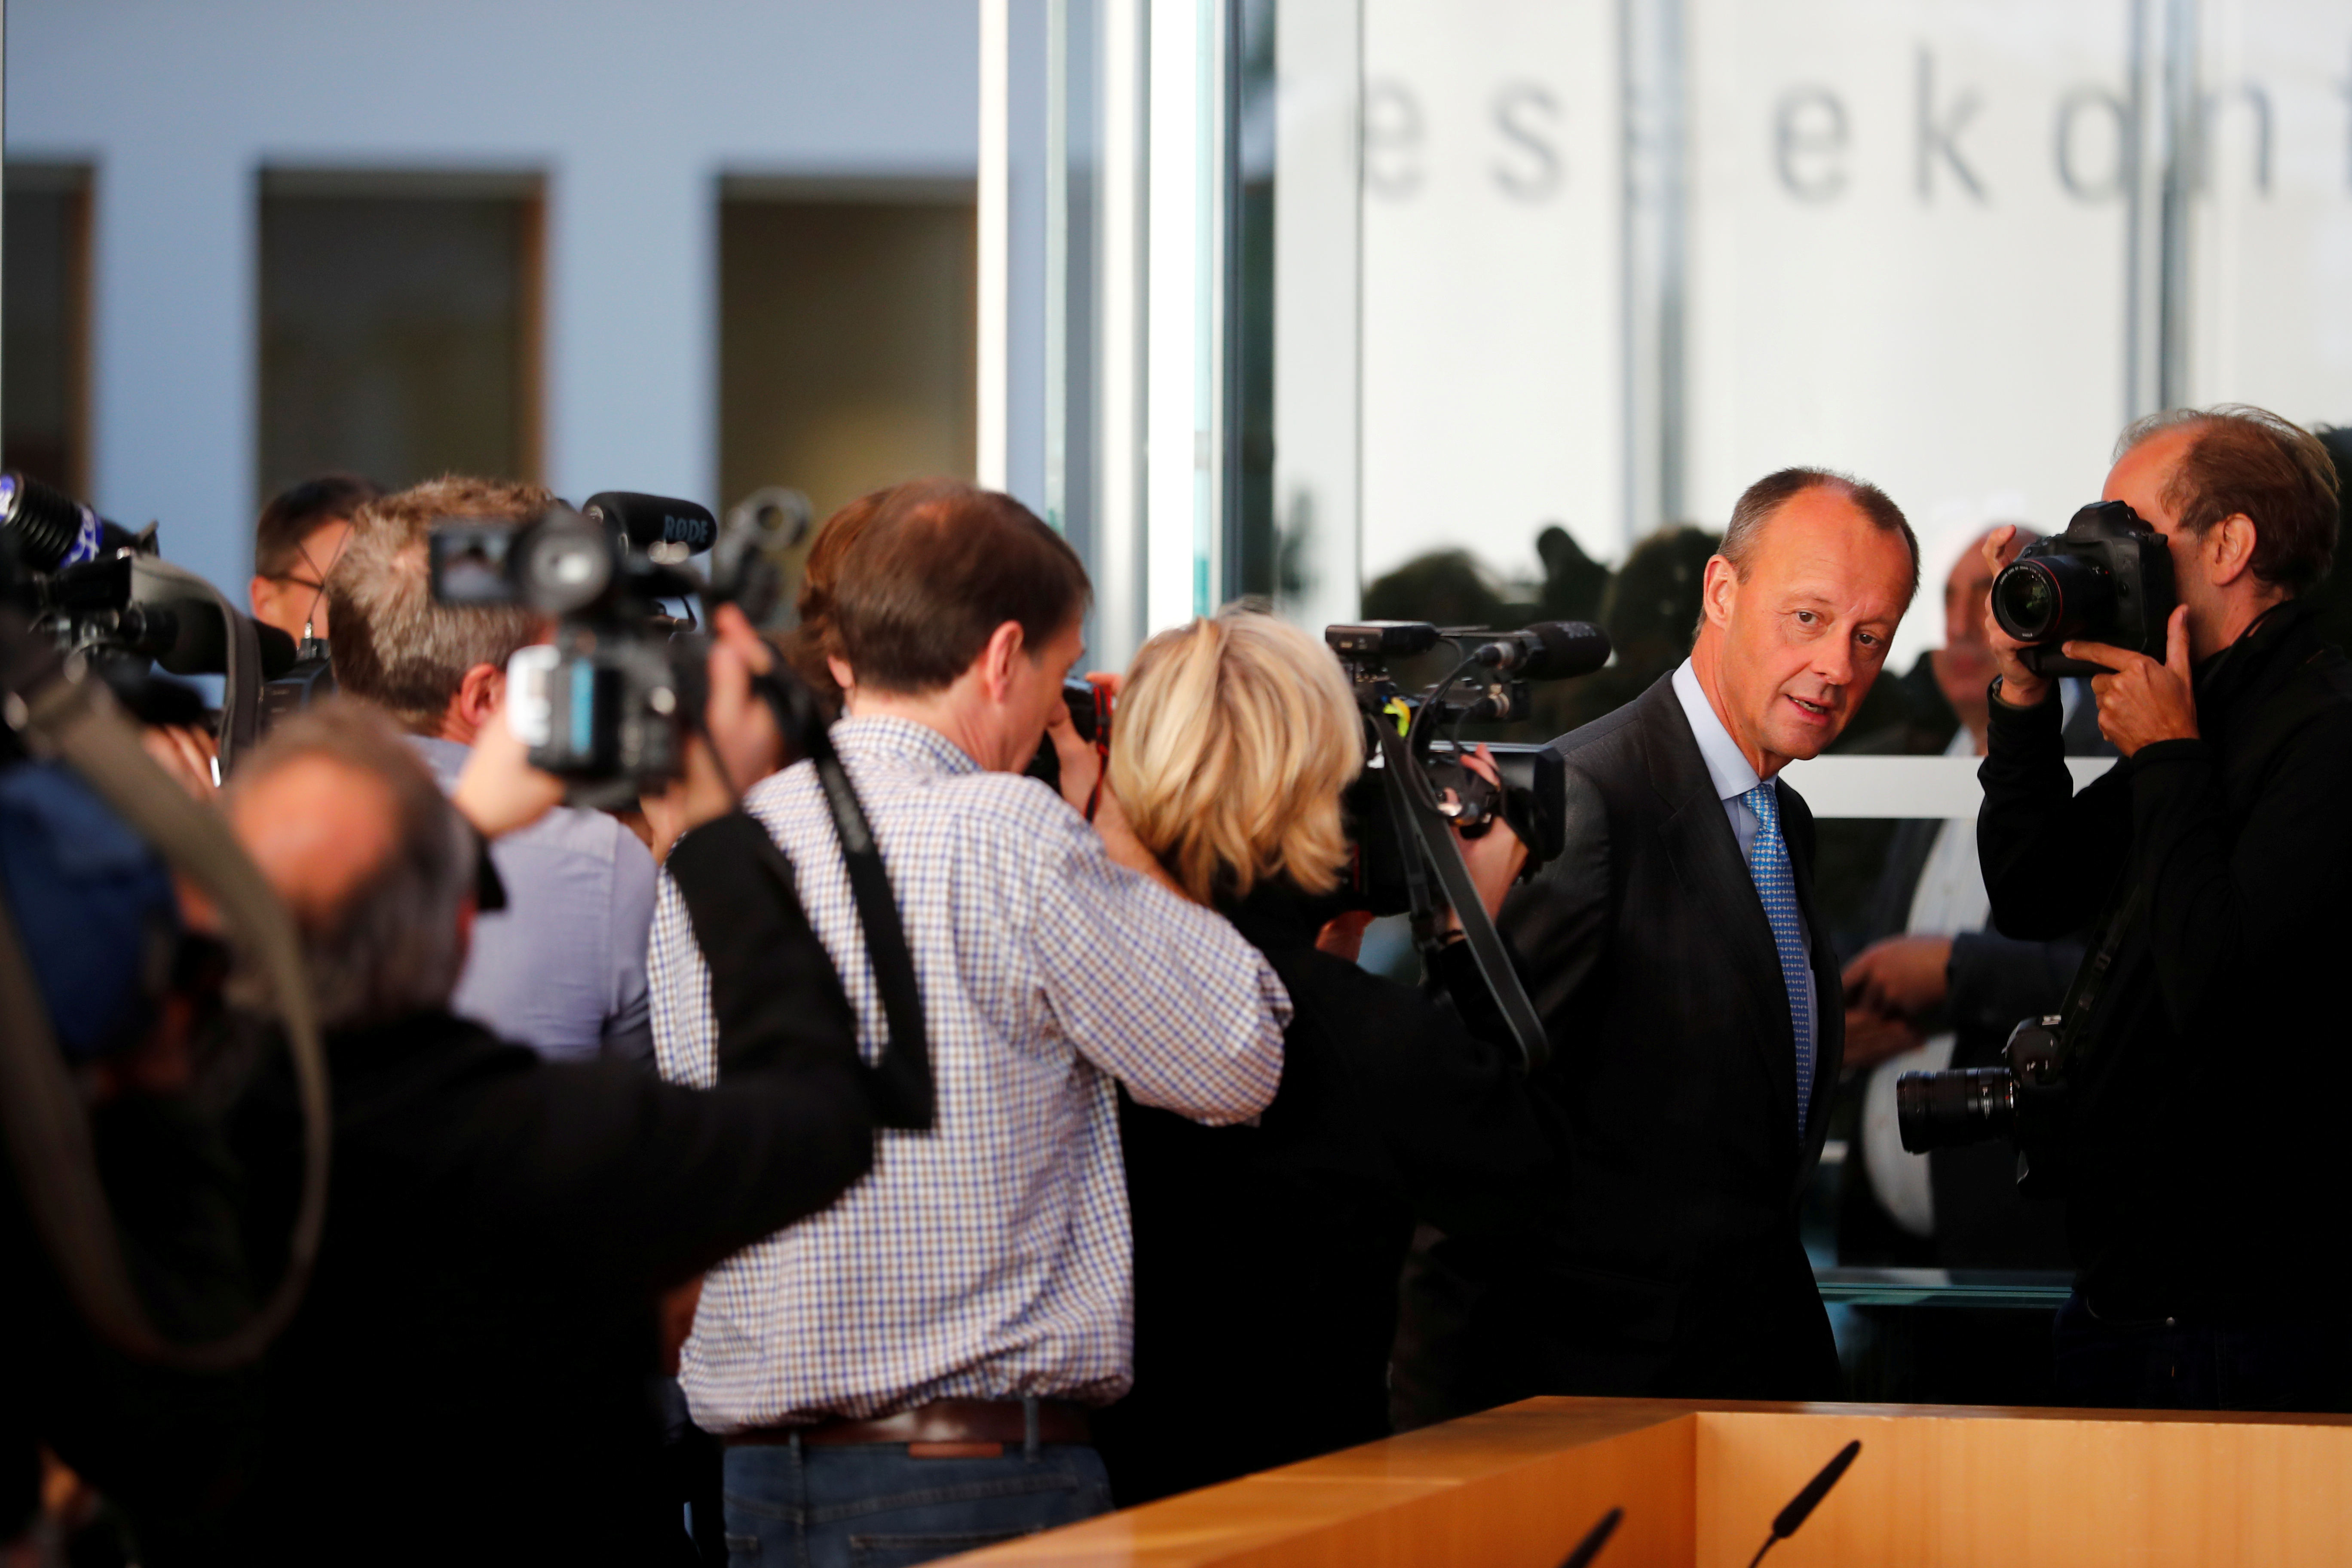 FILE - German conservative Friedrich Merz arrives for a news conference about his candidacy to succeed Chancellor Angela Merkel as leader of the Christian Democrats, in Berlin, Germany, Oct. 31, 2018.